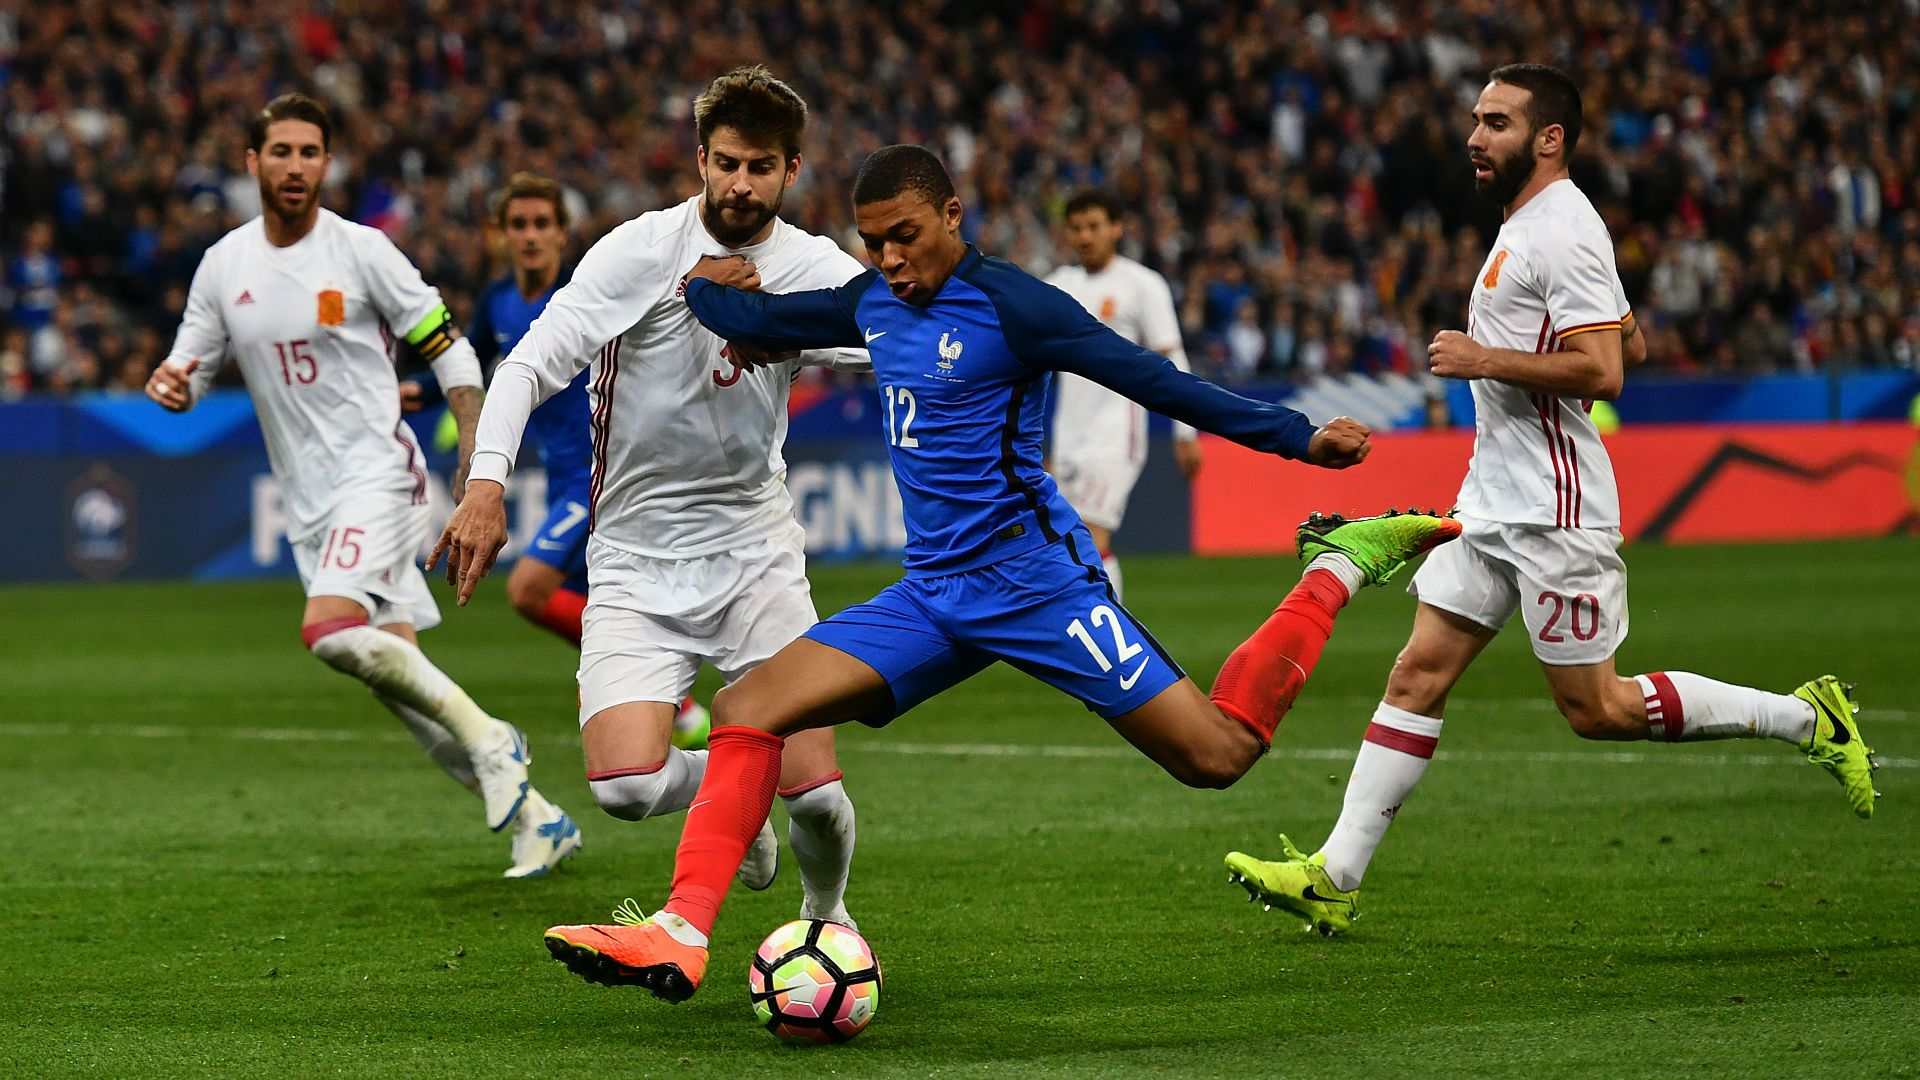 Mbappe to be included in France U20 squad   INTERNATIONAL-FRIENDLIES ...